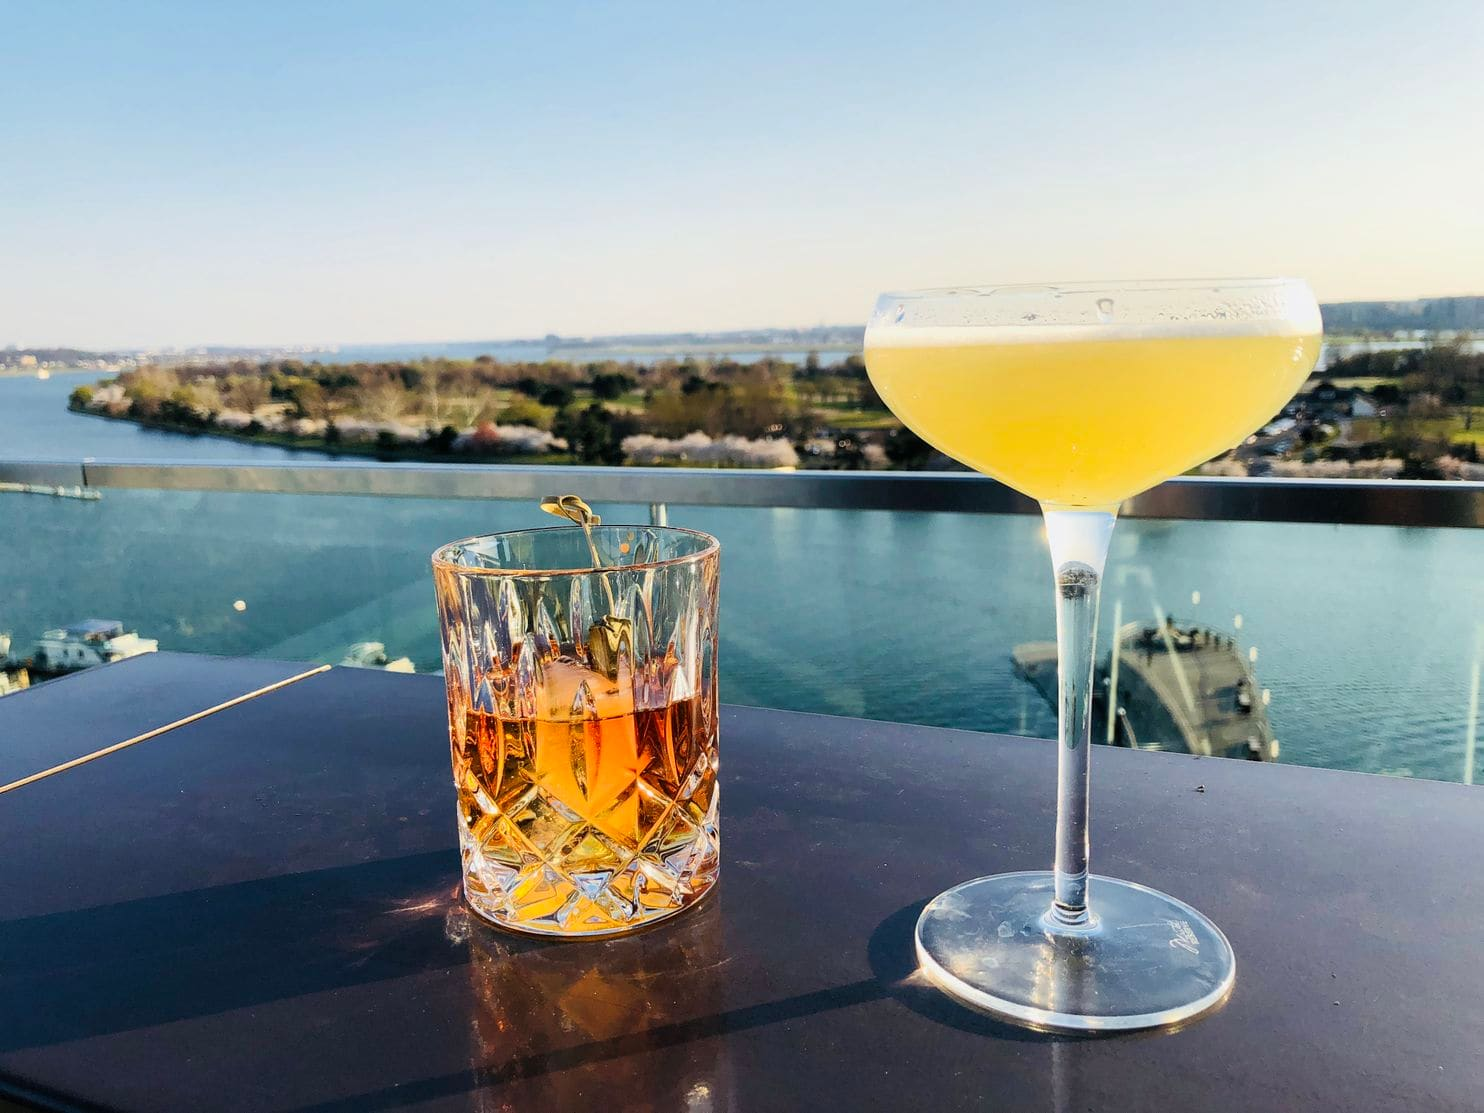 THE WASHINGTON POST  Looking for D.C.'s hottest rooftop bar scene? Head to the Wharf.